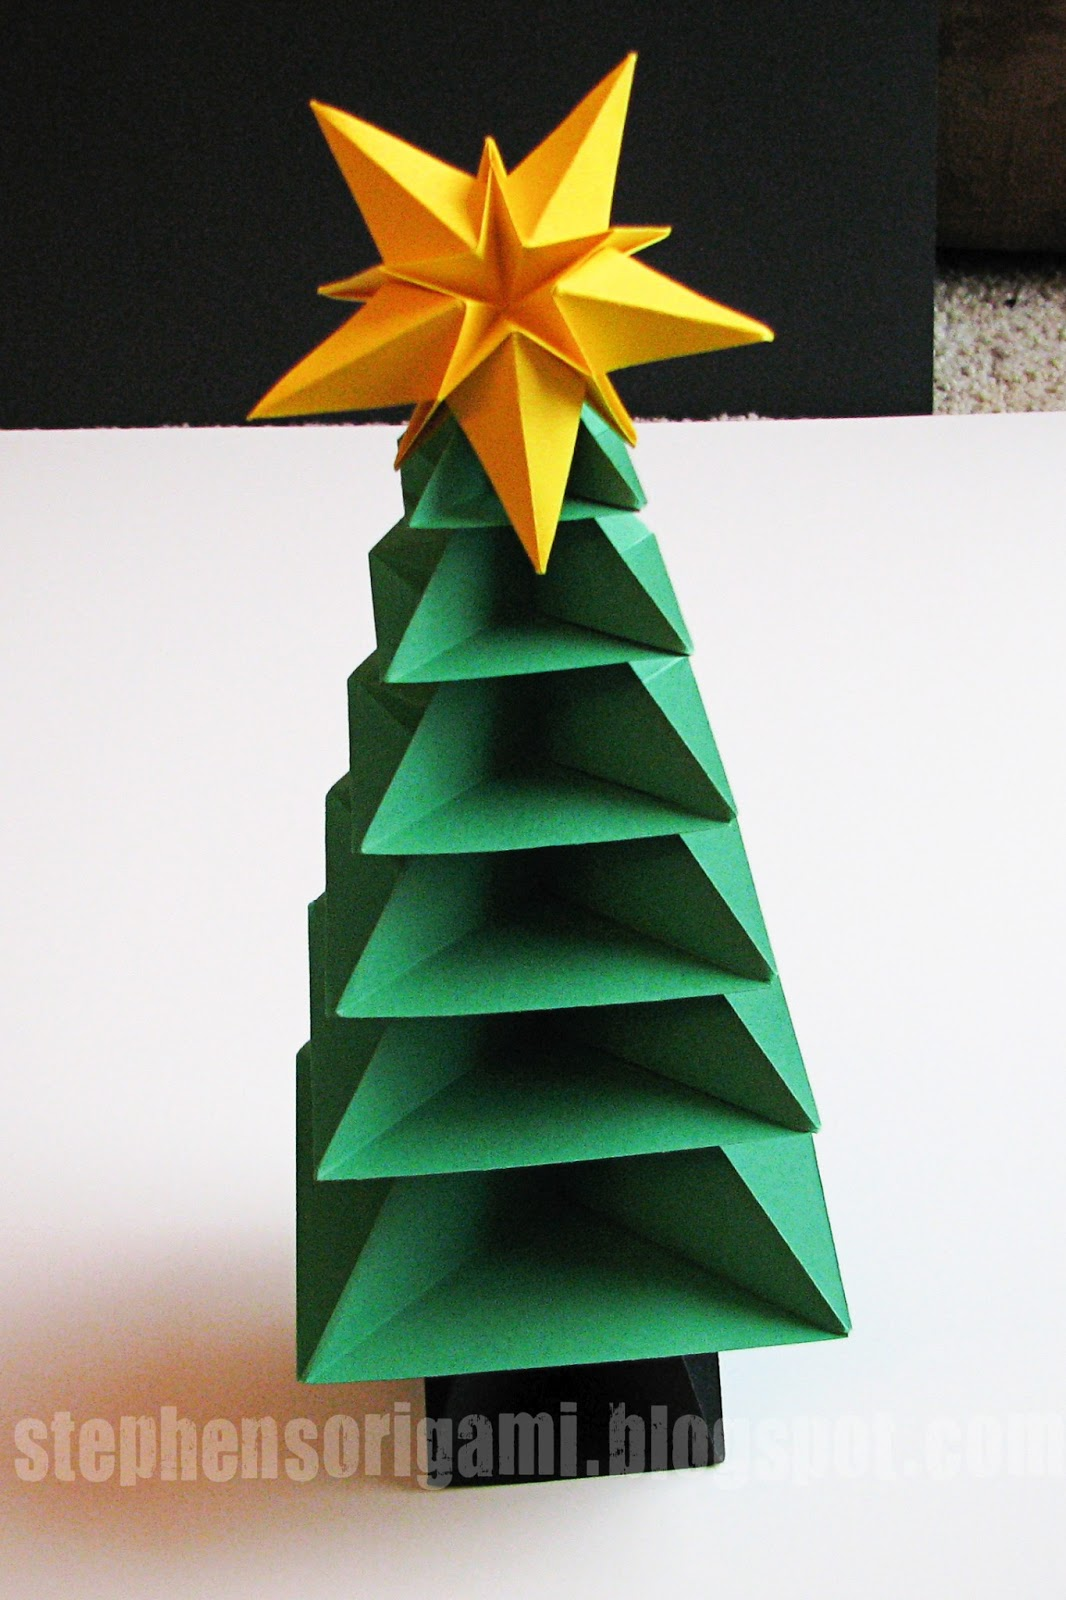 Origami instructions com 8 pointed origami star - Stephen S Origami Origami Christmas Tree Tutorial